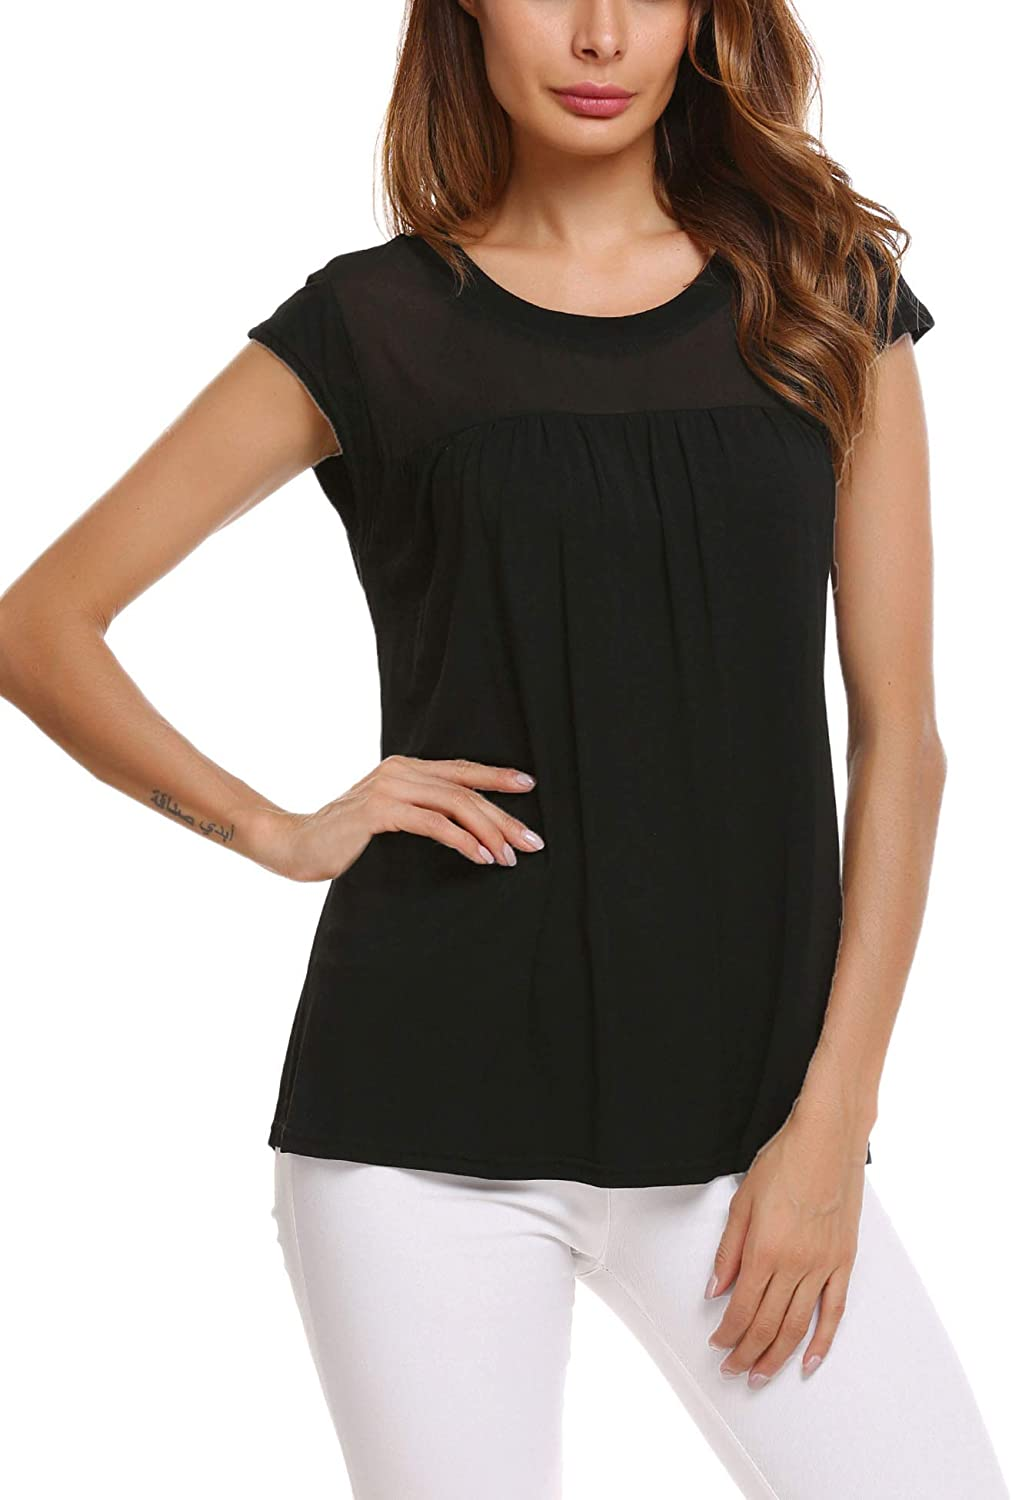 Zeagoo Womens Casual Loose Round Neck Cap Sleeve Top Chiffon Stitching Pleated Pullover Blouse